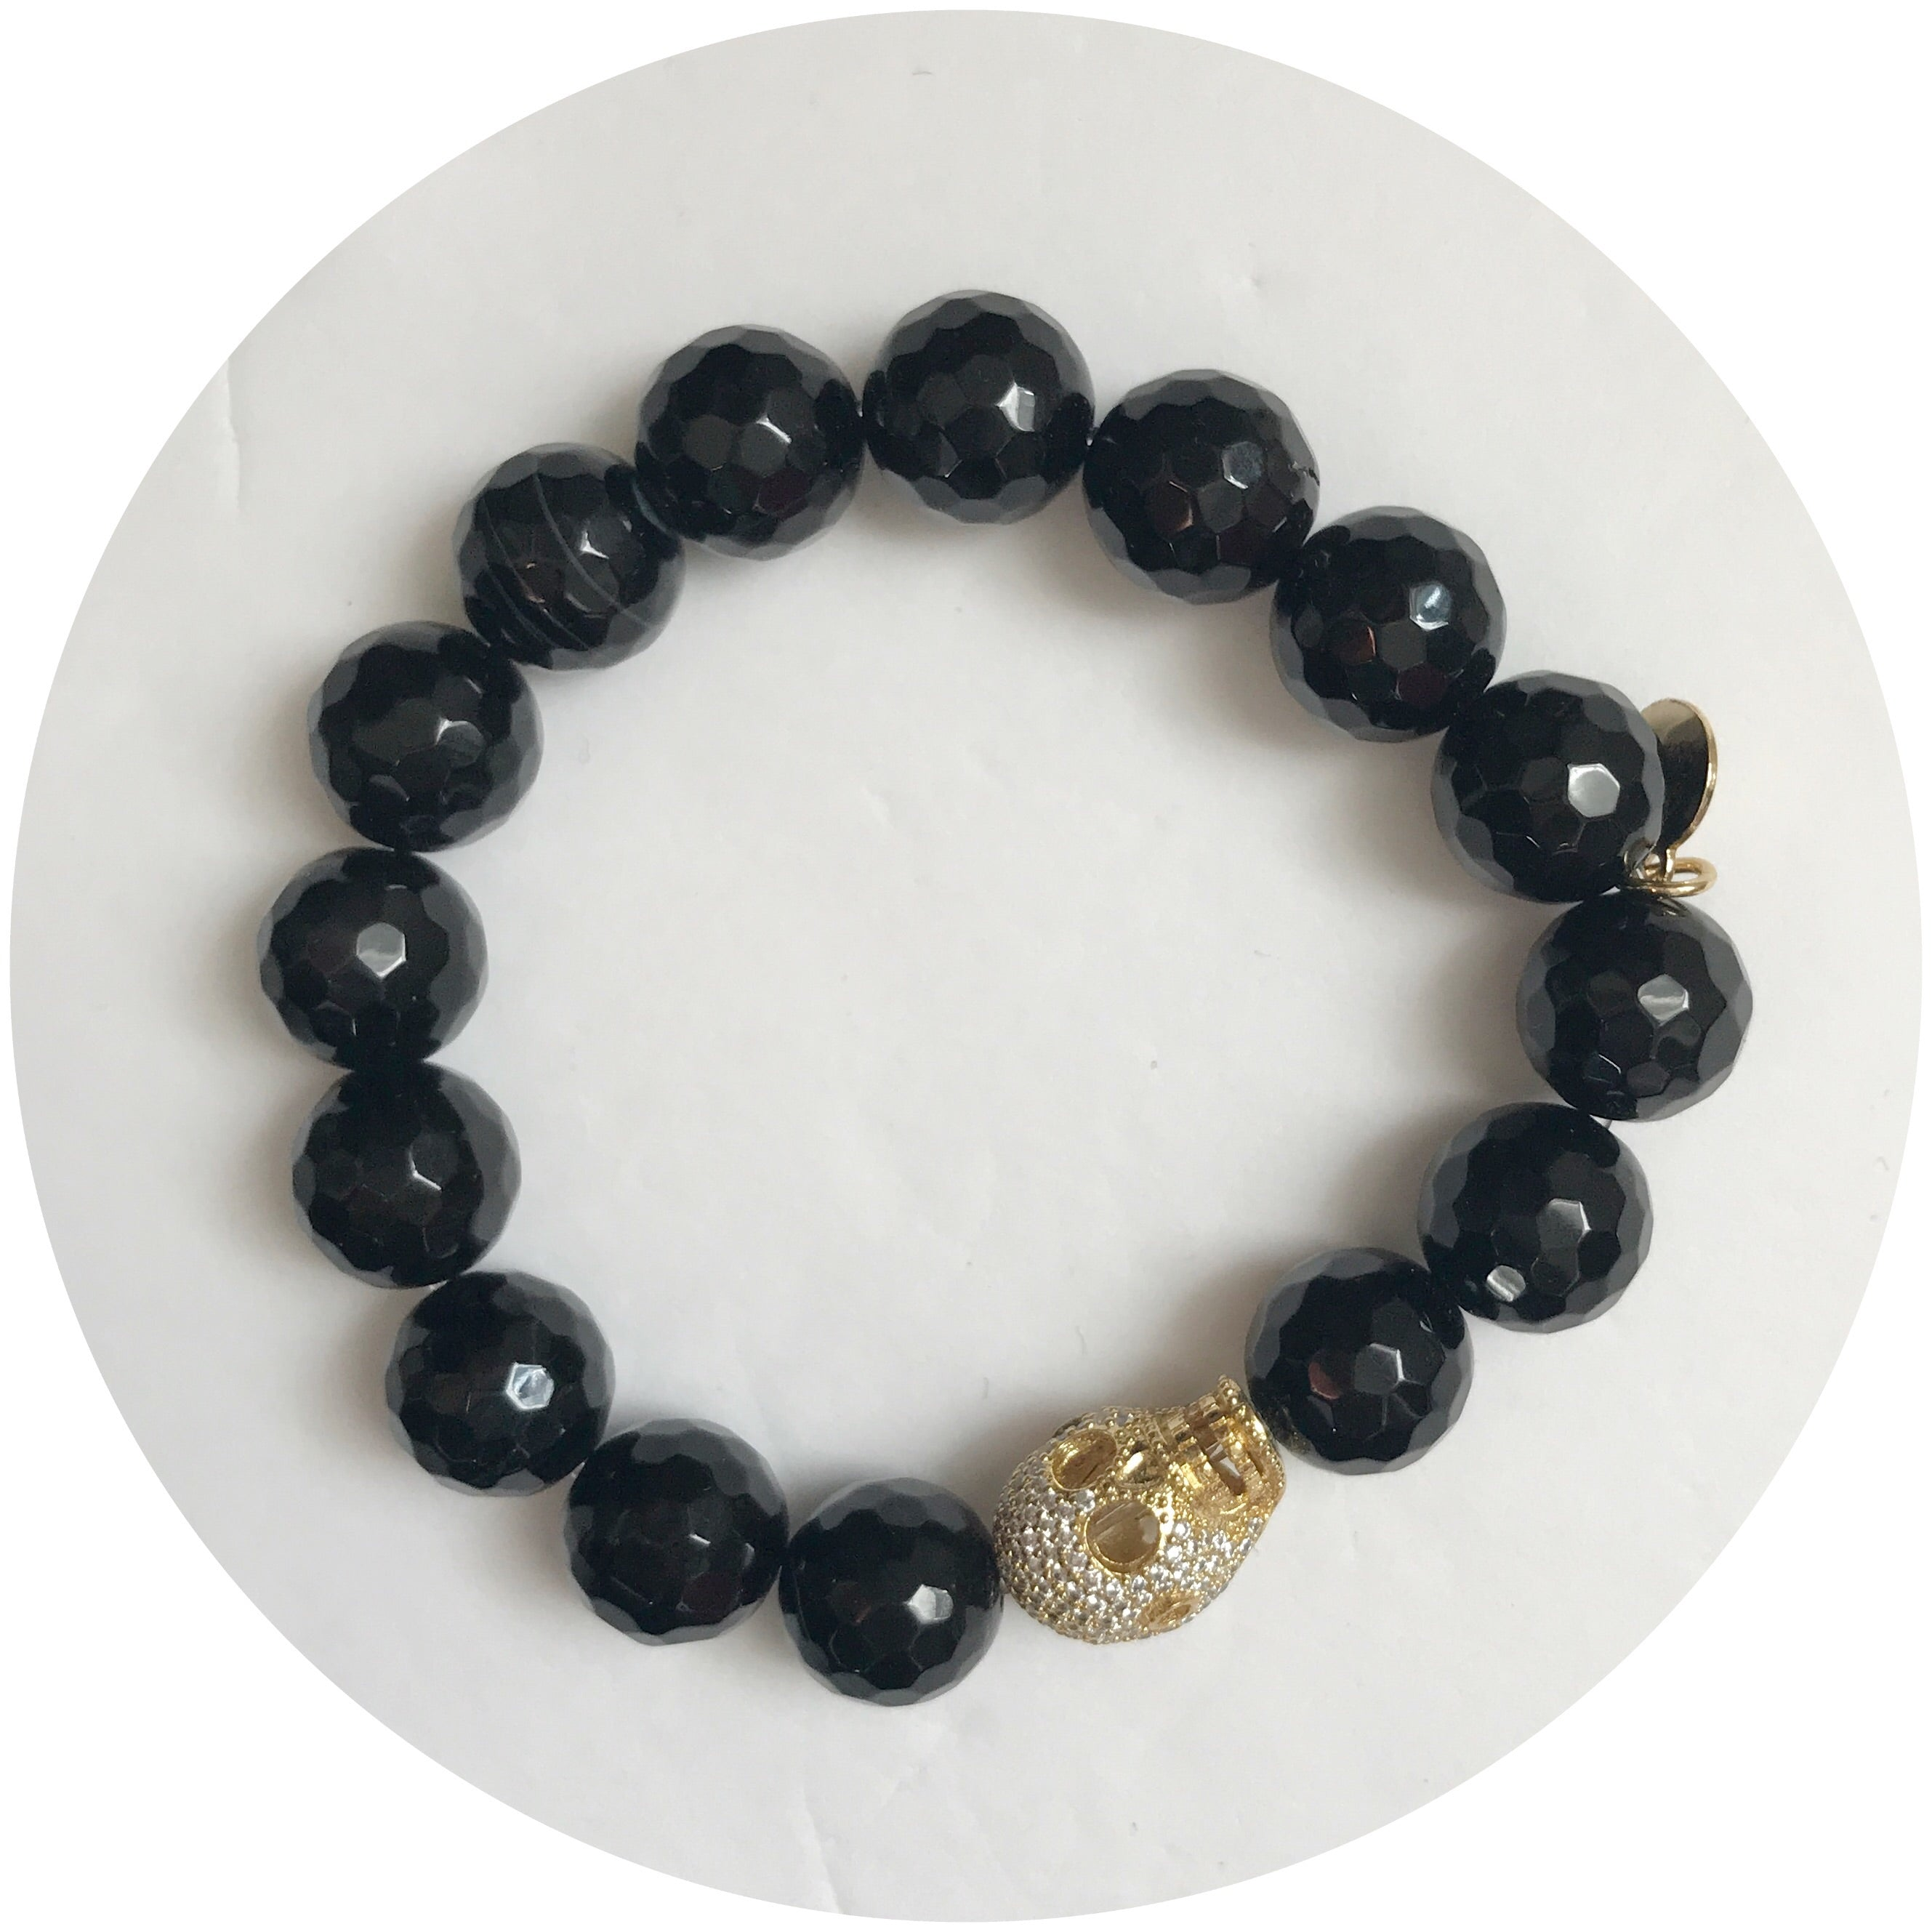 Black Onyx with Pavé Gold Skull - Oriana Lamarca LLC